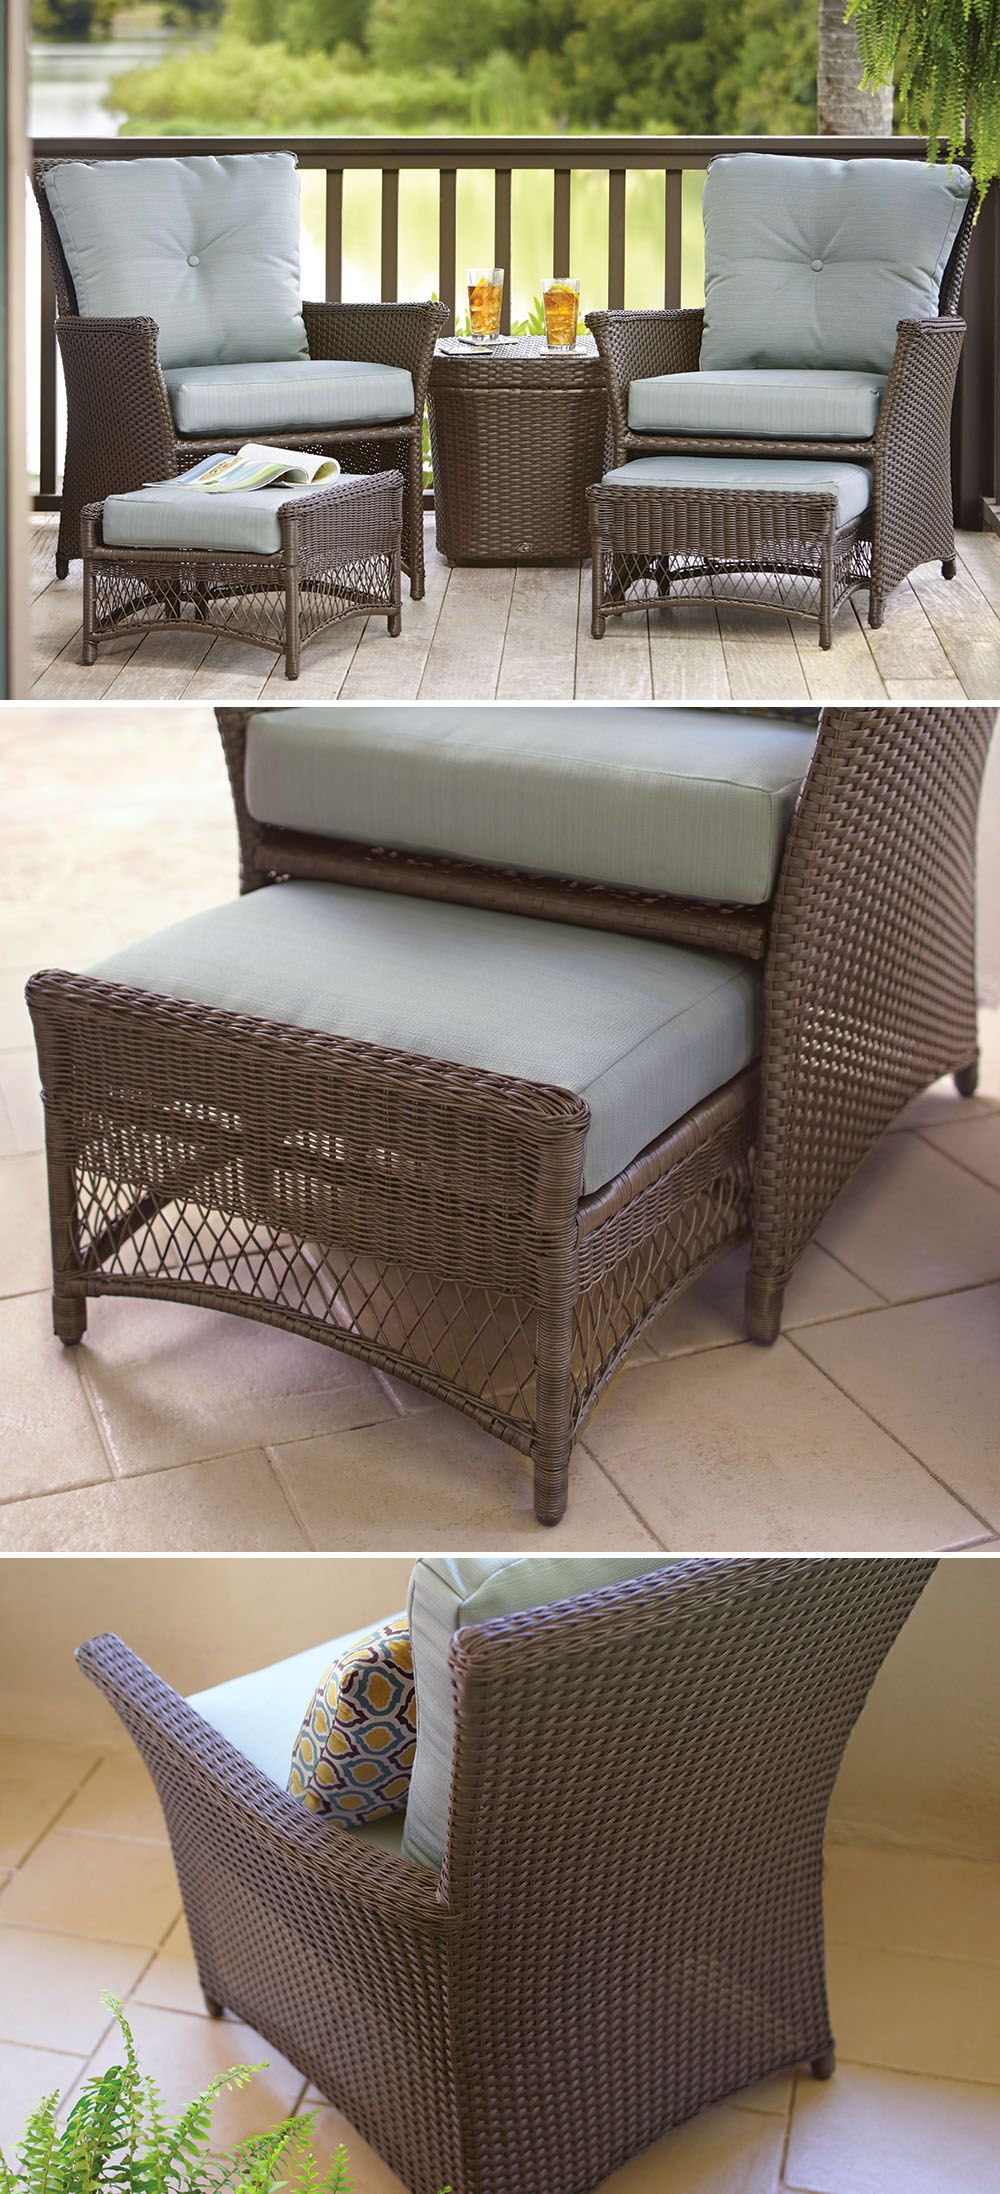 This Affordable Patio Set Is Just The Right Size For Your Small Balcony Or Porch It Includes Two Stationary Chairs Cushions Lumbar Pillows